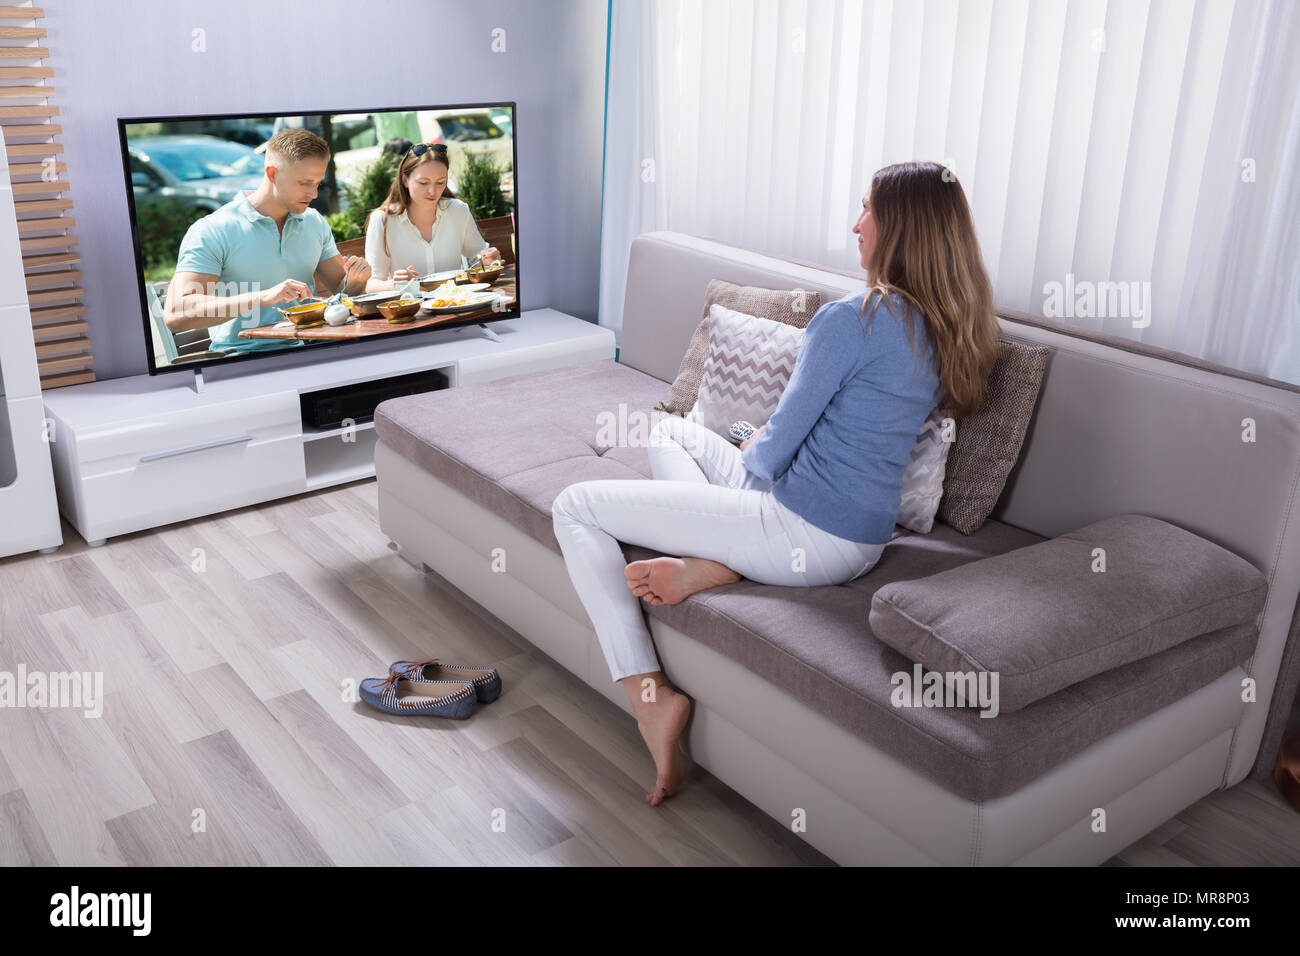 Mature Woman Sitting On Sofa Watching Television At Home - Stock Image